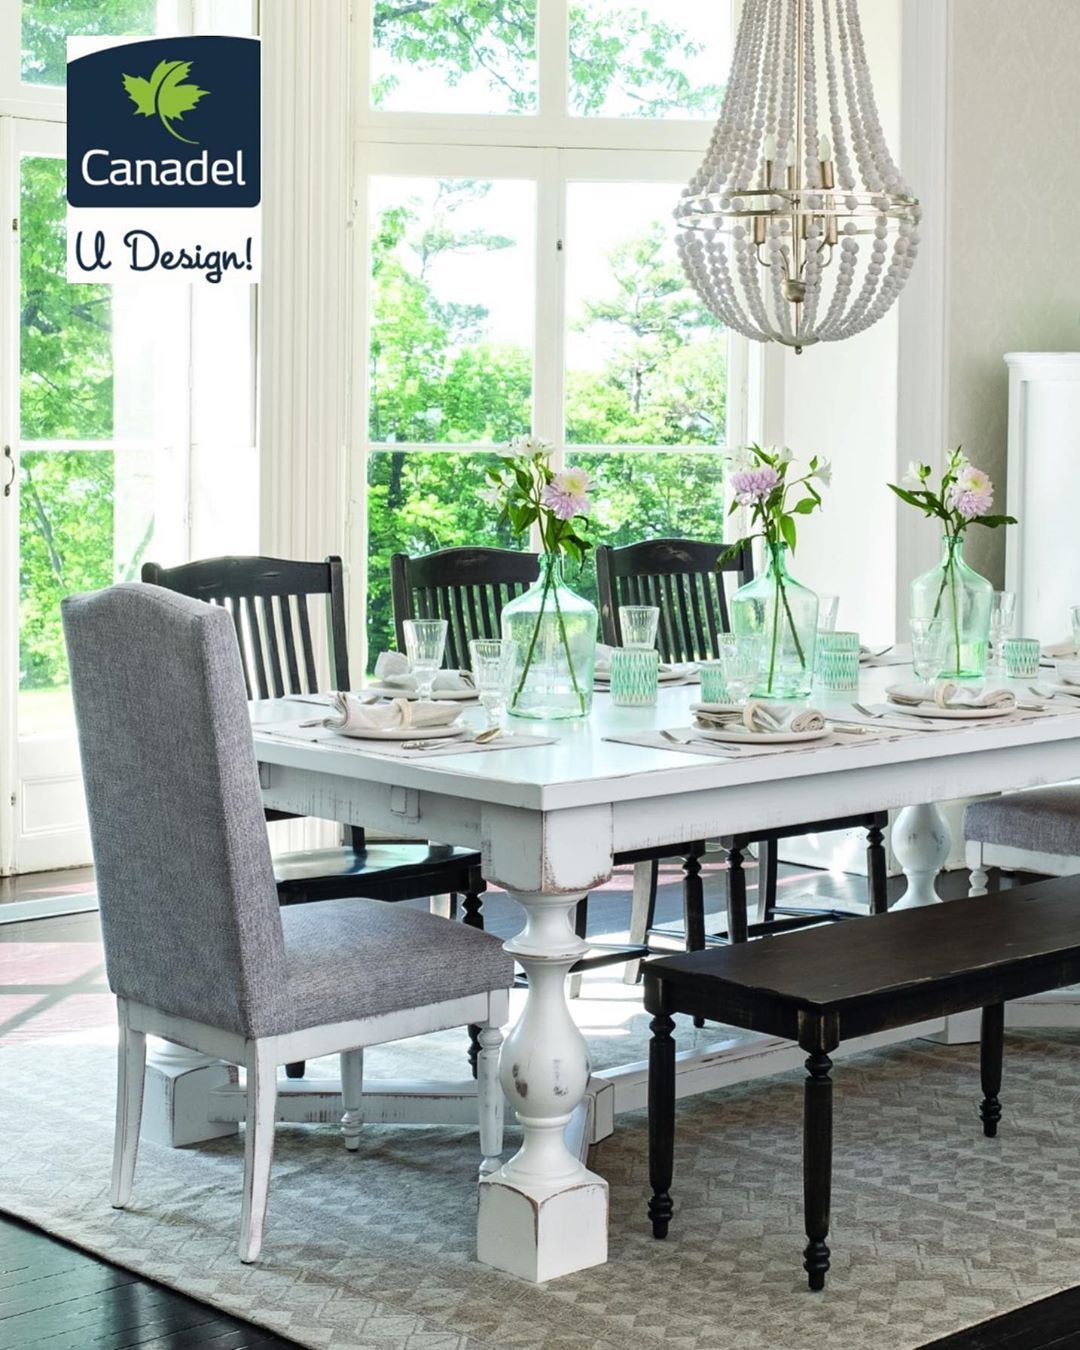 Design Your Own Dining Room With Udesign From Canadel Pick Your